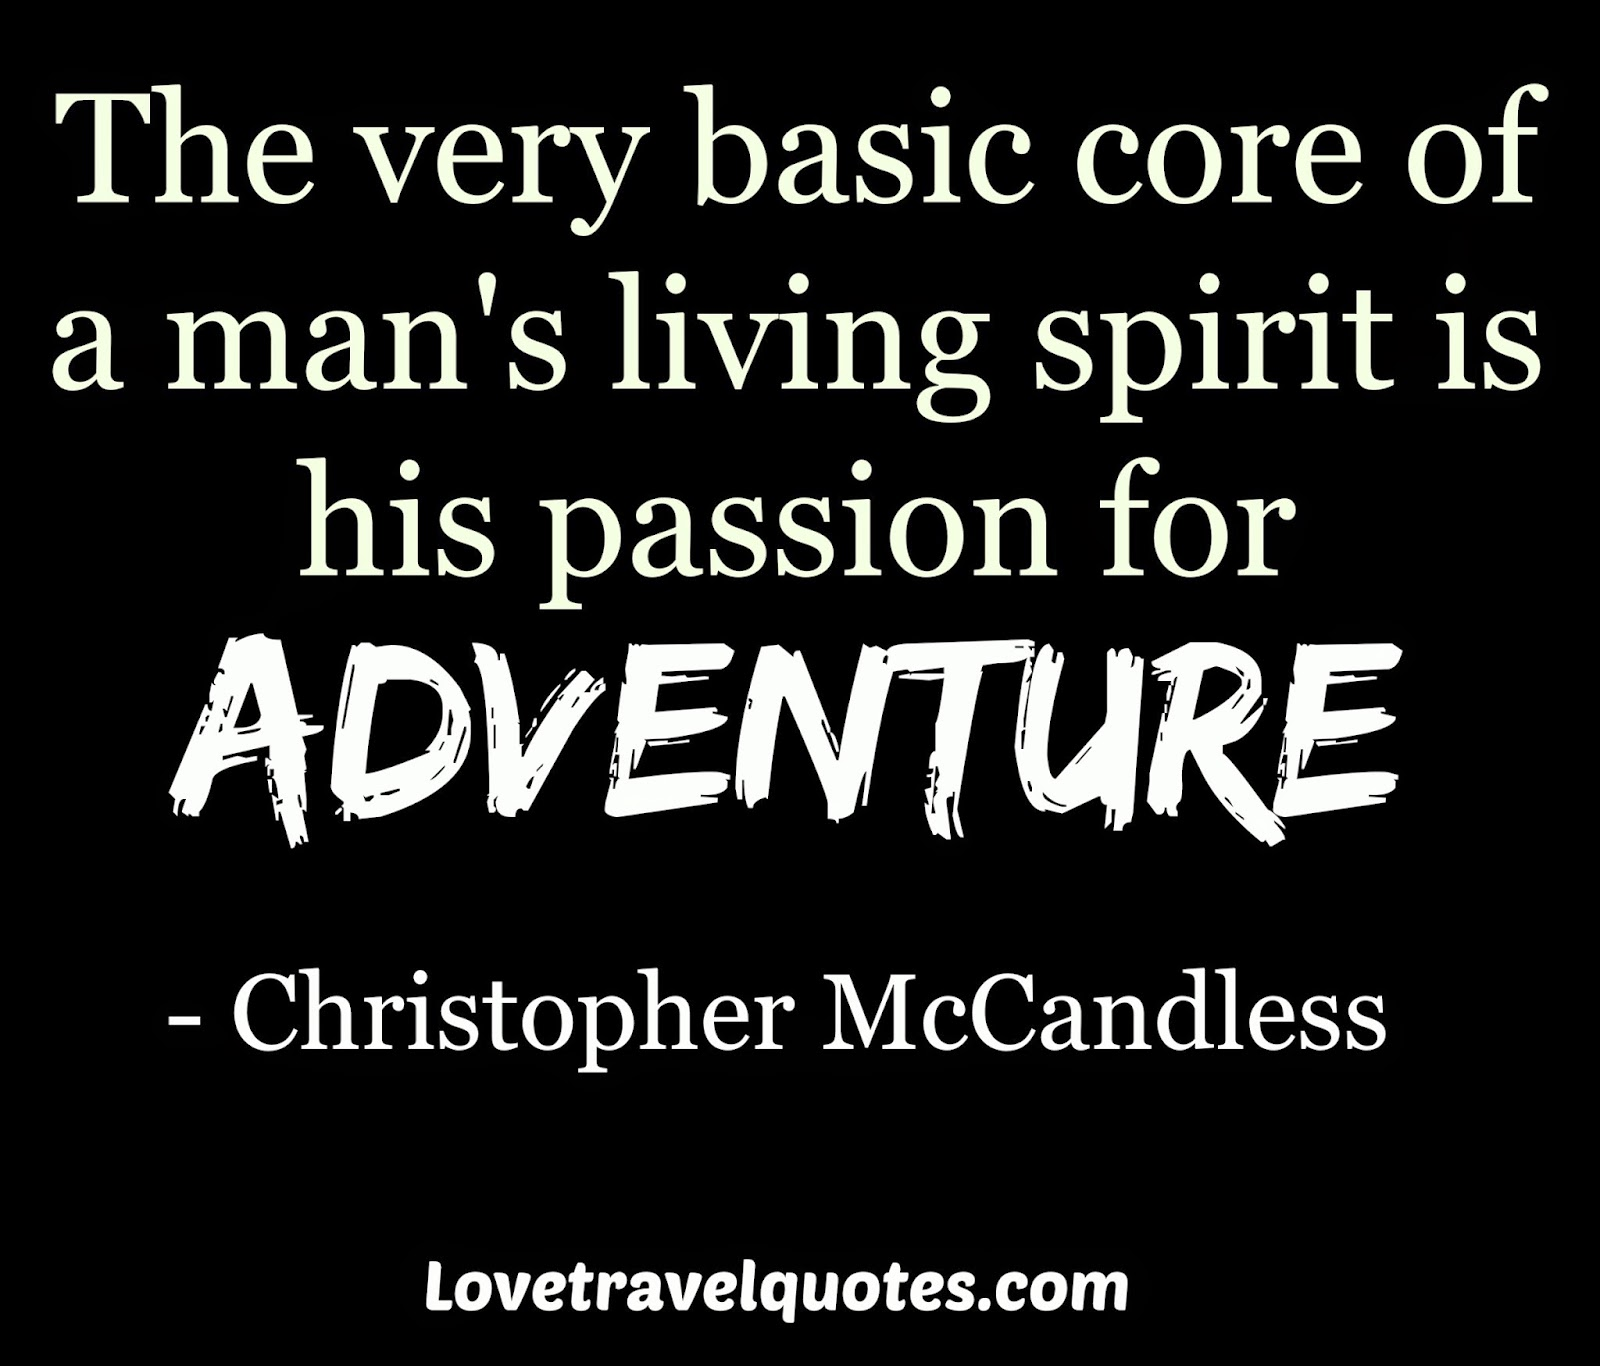 the very basic core of a man's spirit is his passion for adventure